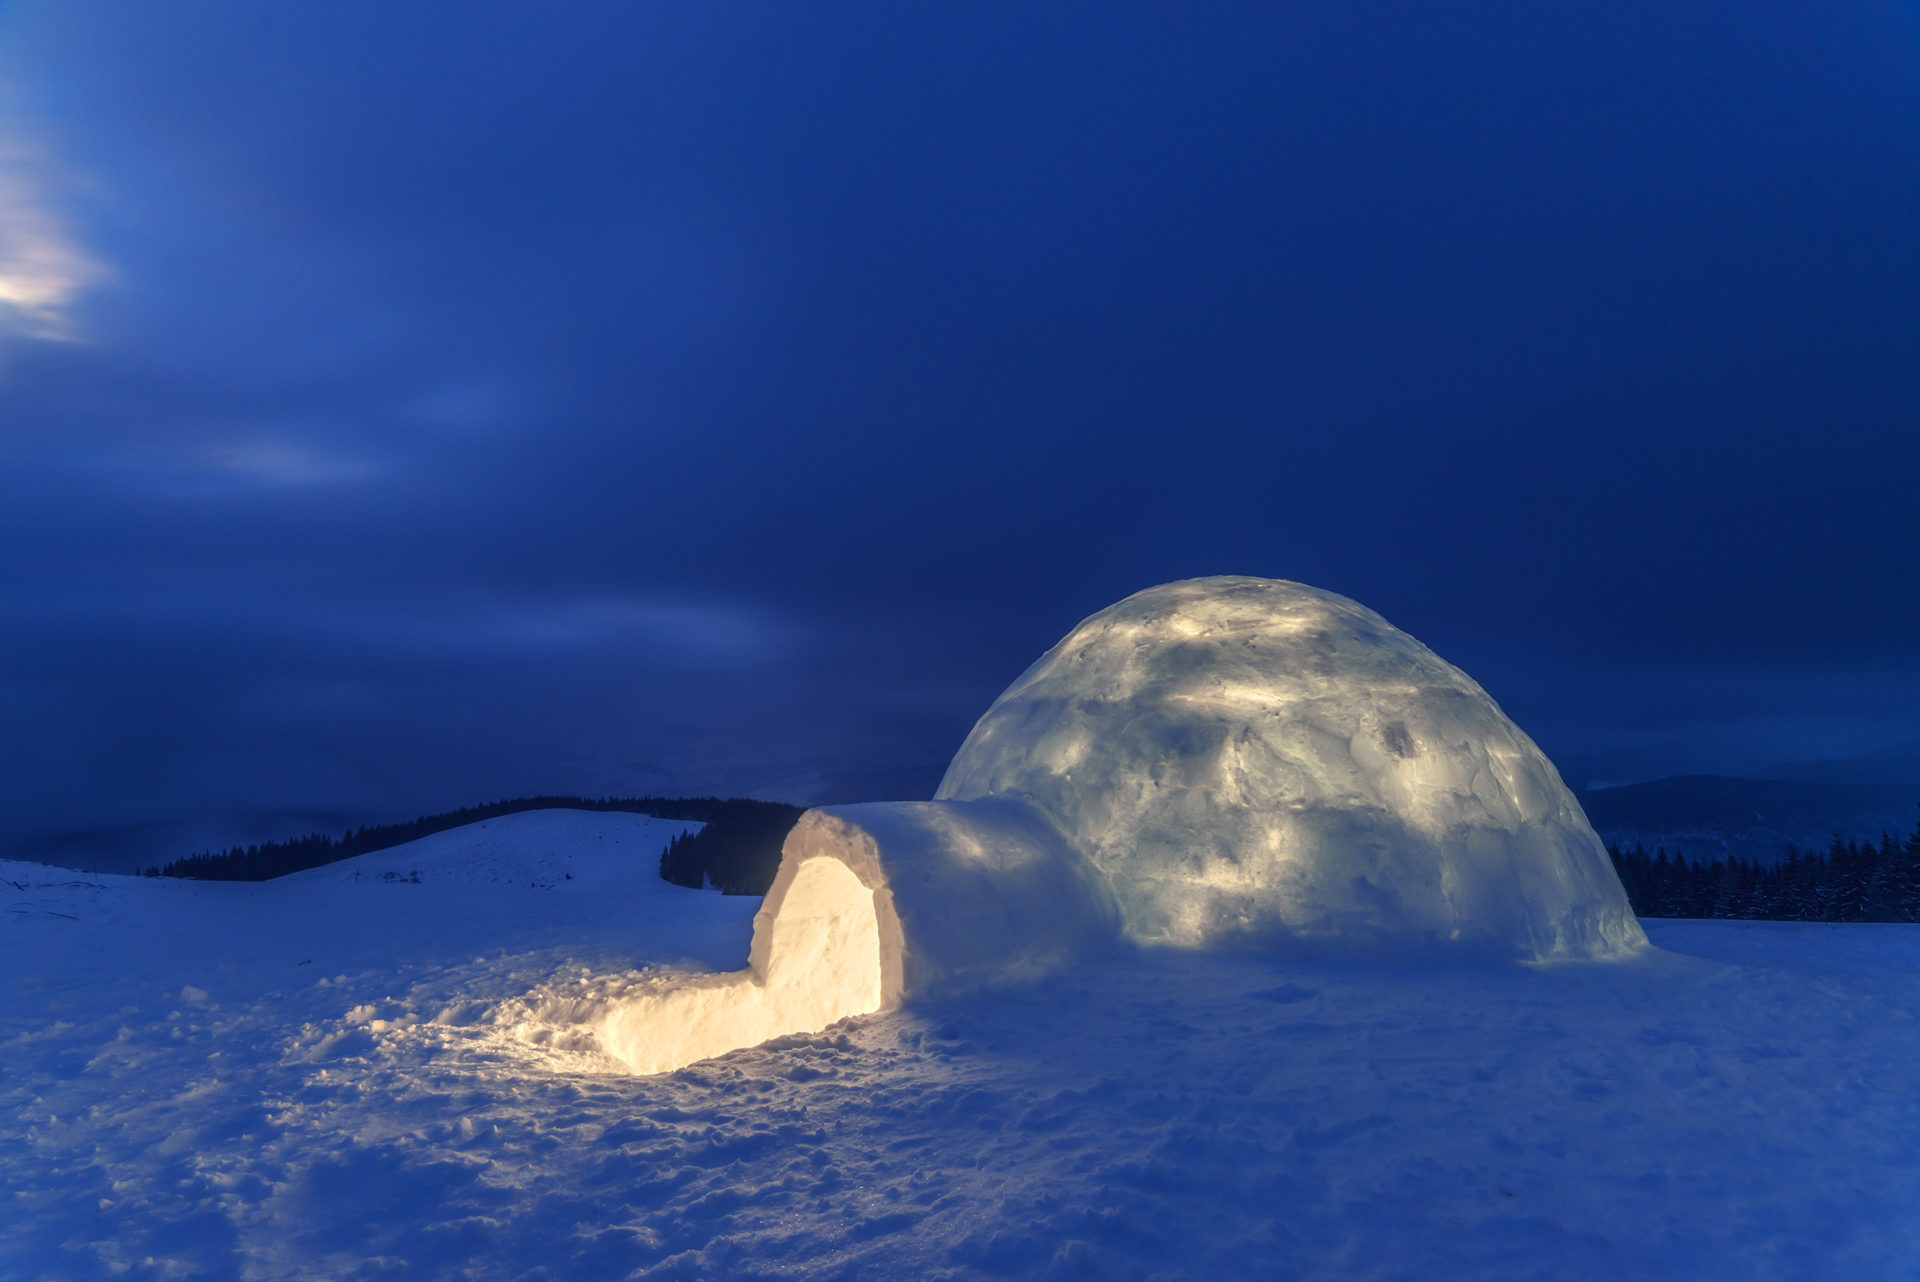 snow igloo in the high mountain